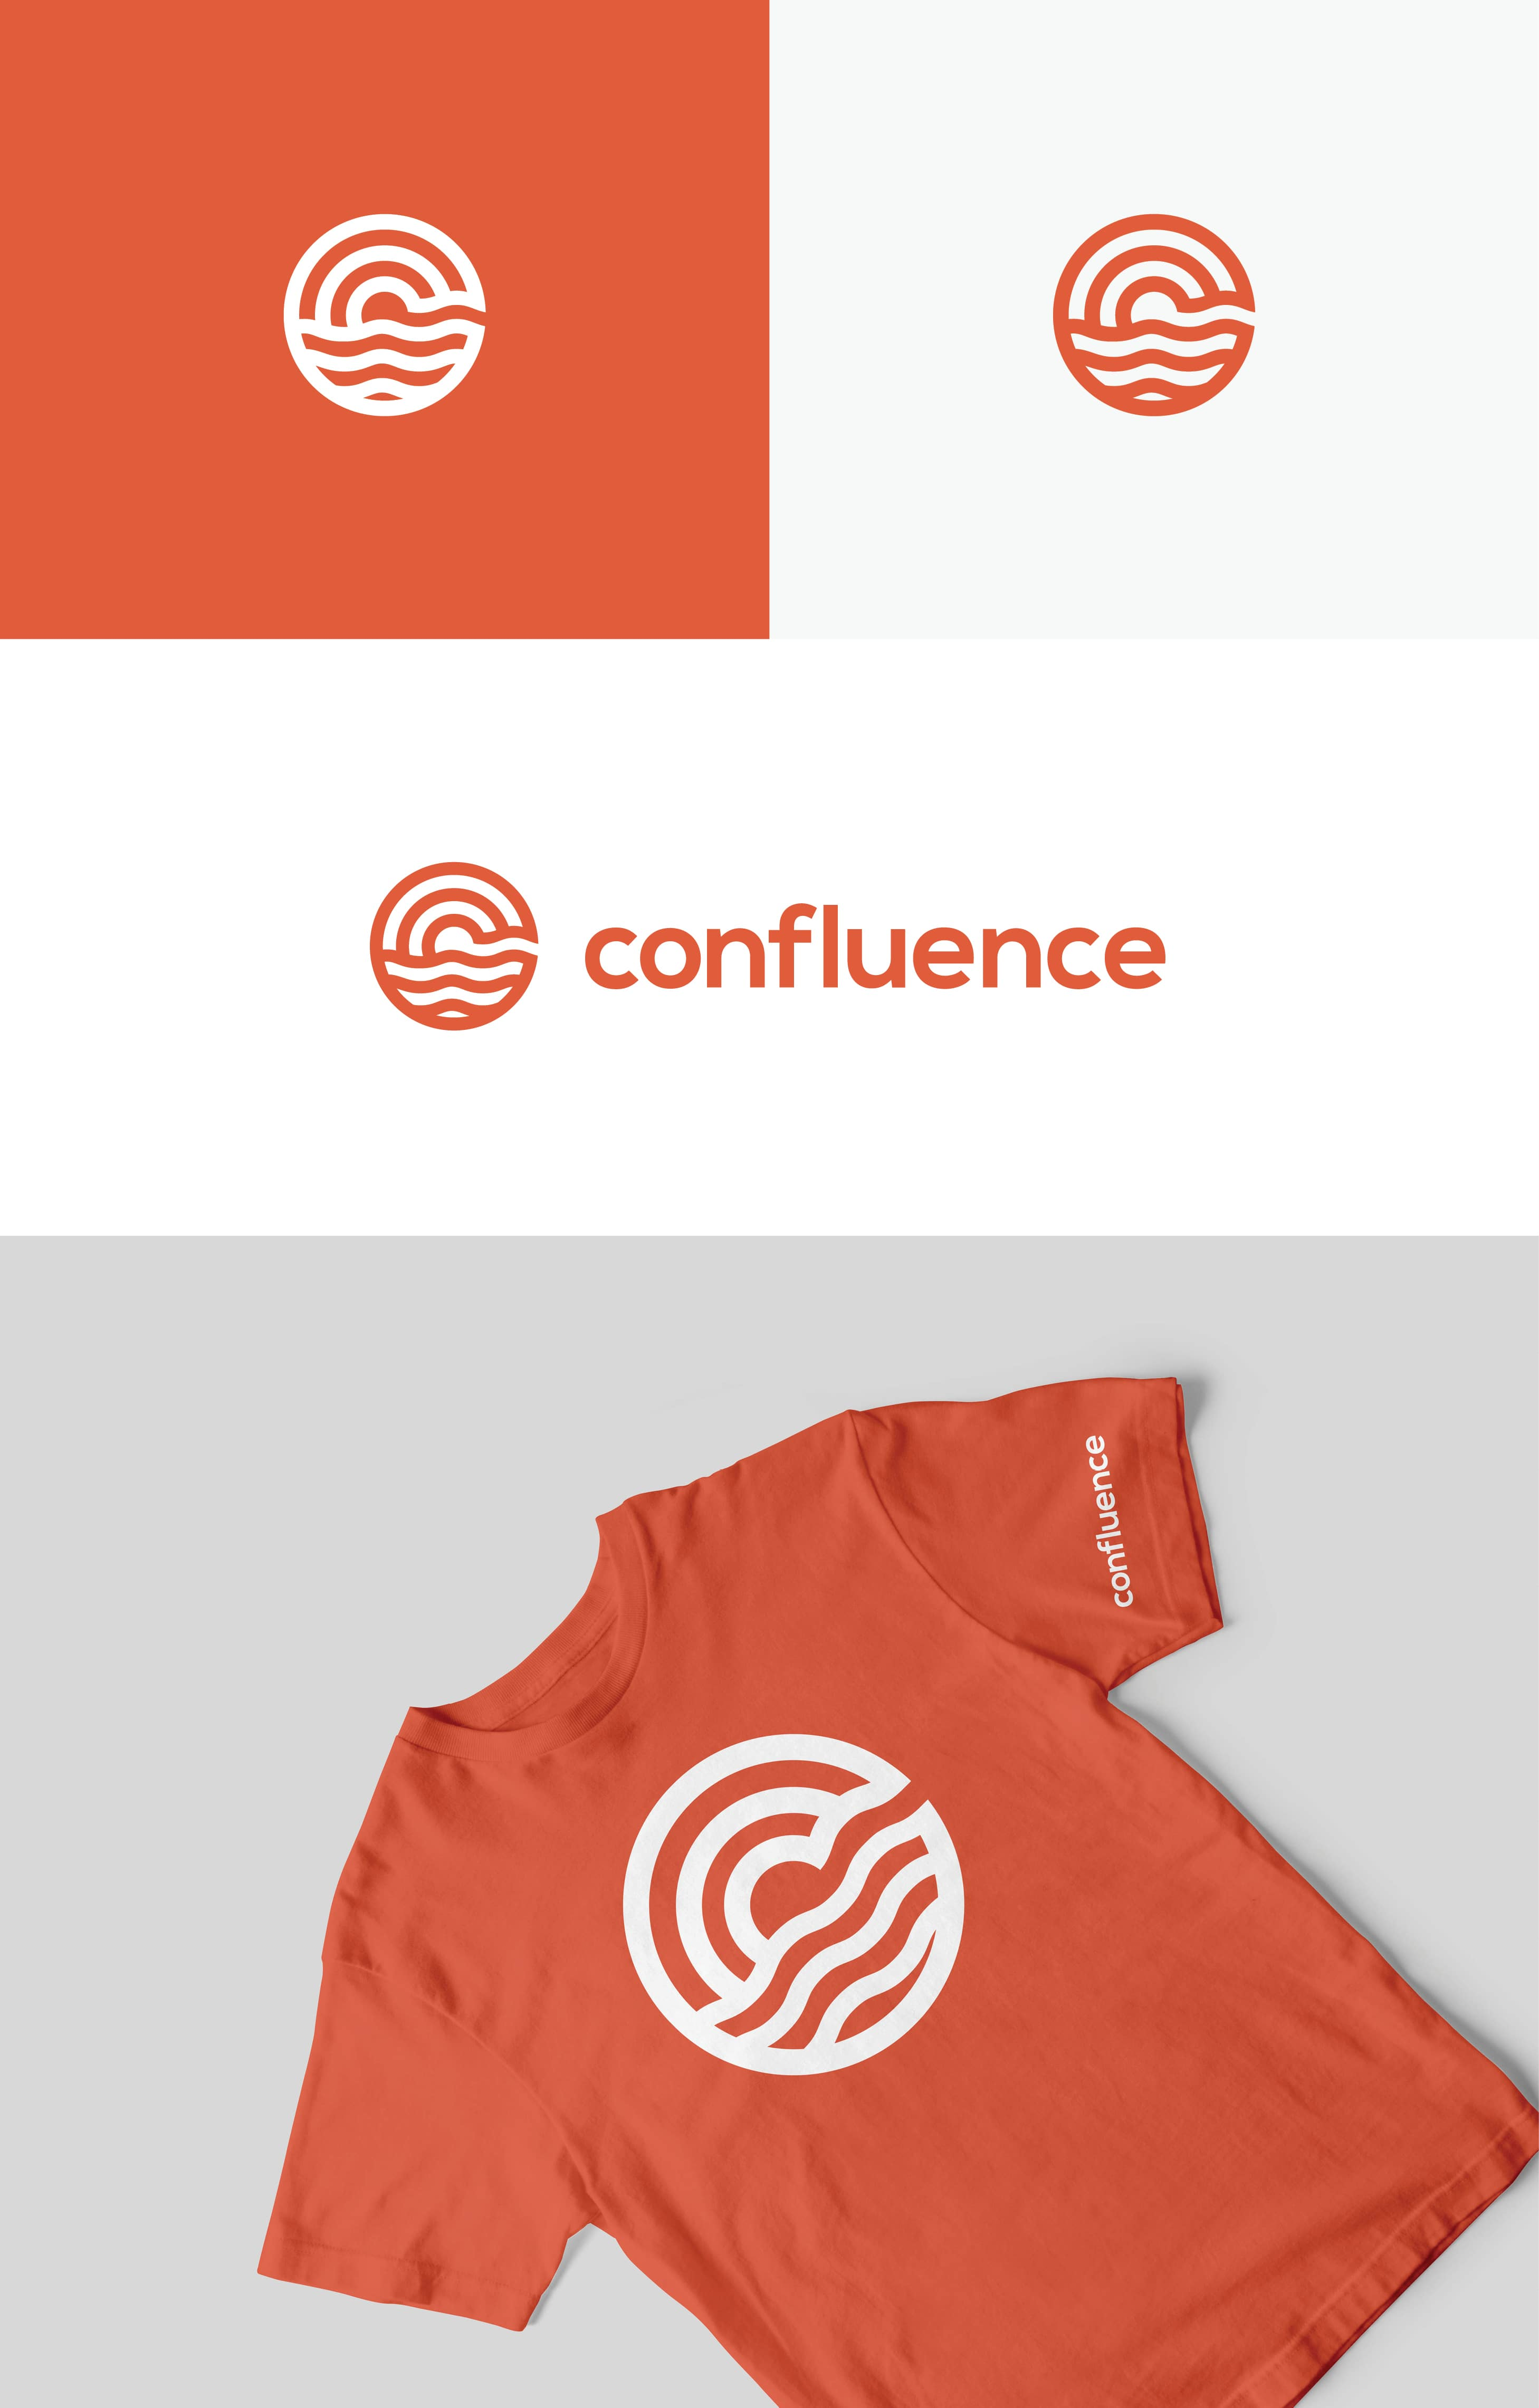 rome confluence conference logo design